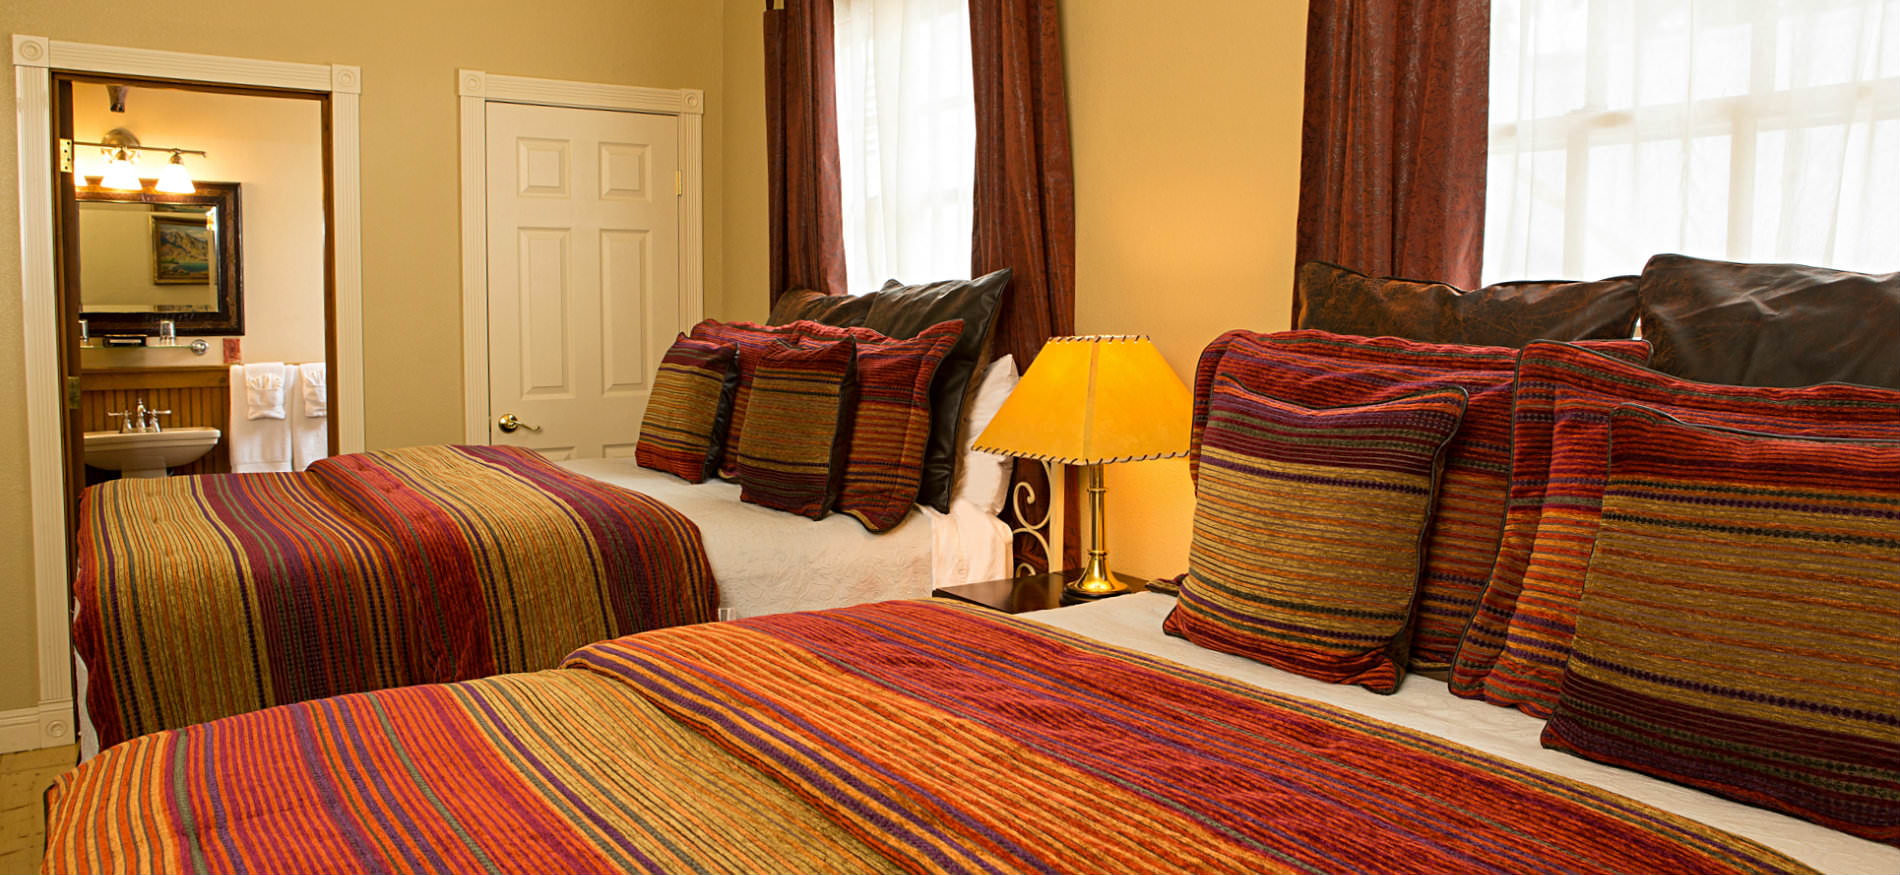 Bedroom with two beds covered in red and gold striped bedspreads, a nightstand, and two large windows